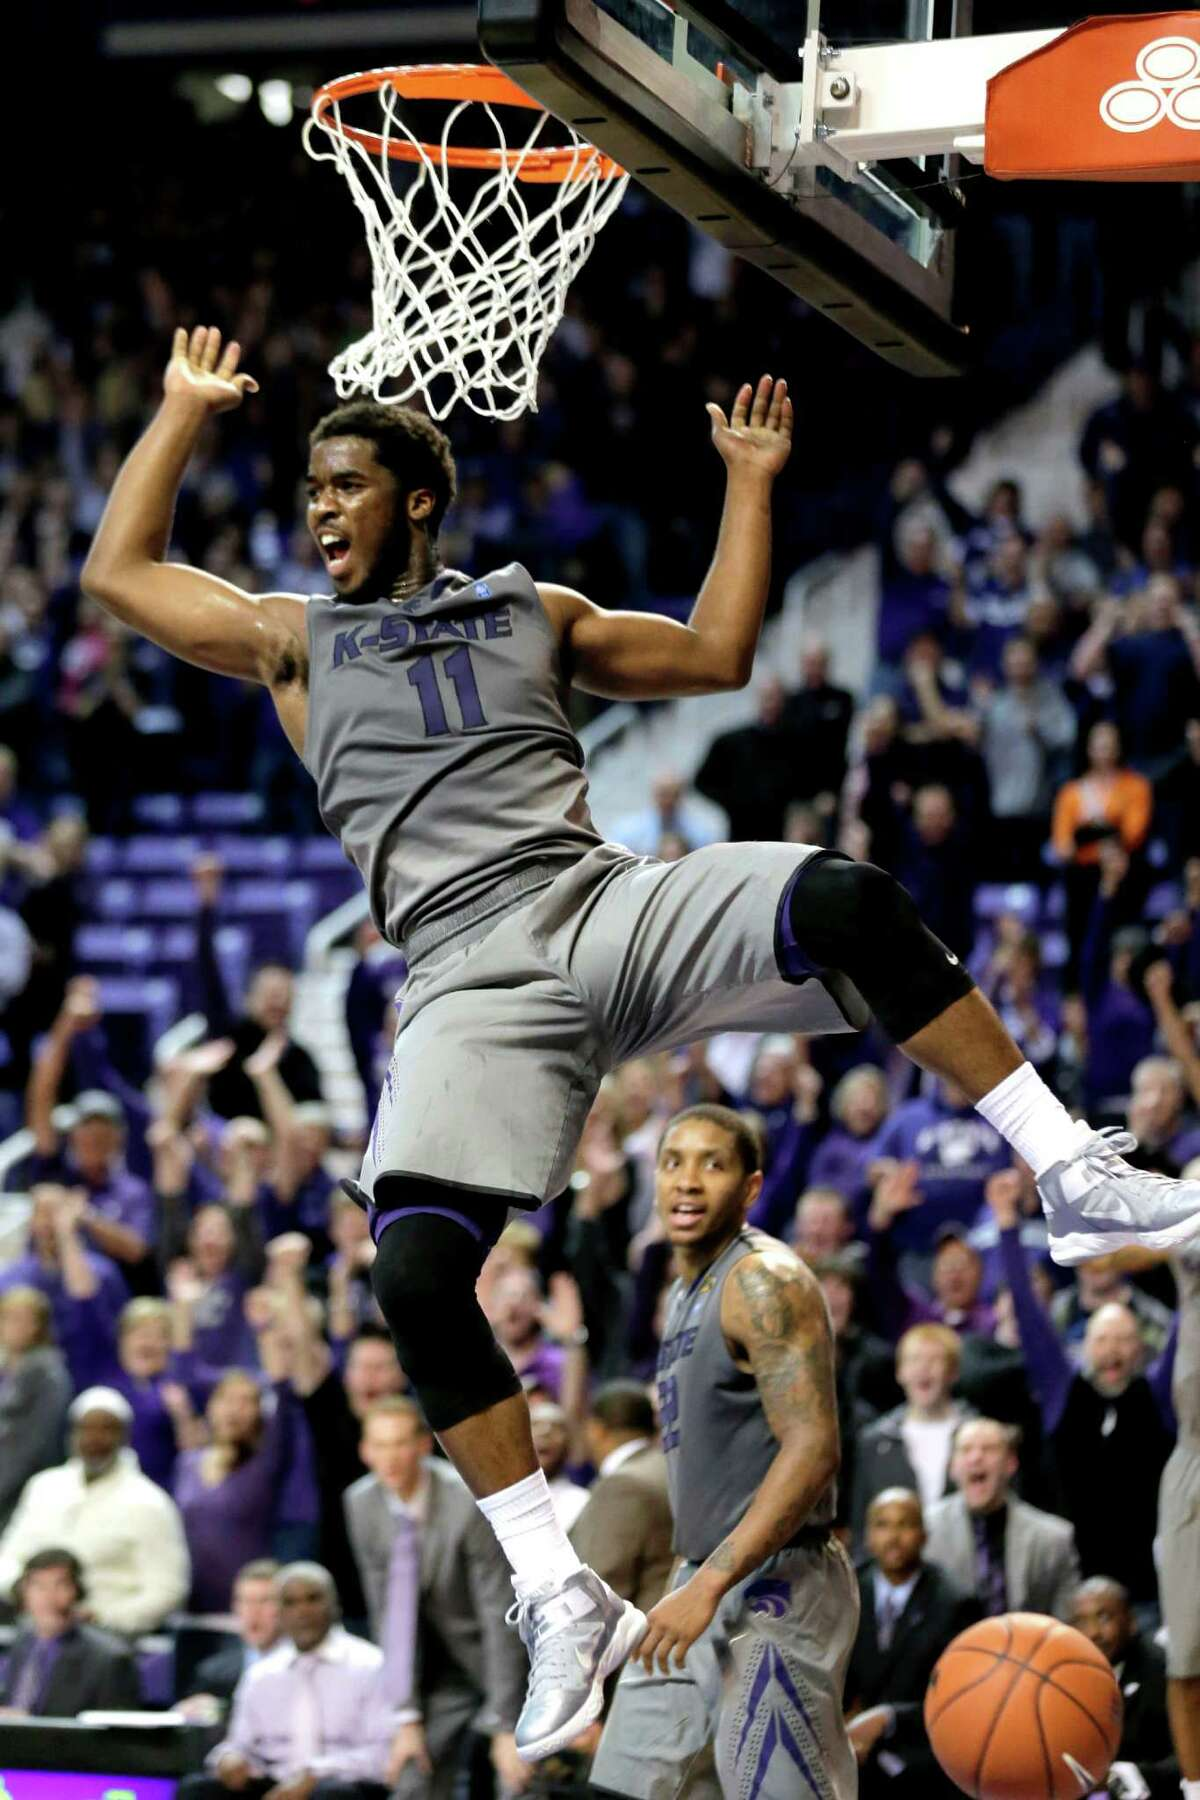 Kansas State (25-6, 14-4) Best Big 12 finish: Lost in the final in 2010 Best wins: Florida (67-61), Oklahoma State (73-67), Baylor (81-61) Worst loss: at Kansas (83-62) Player to watch: G-F Rodney McGruder - He might be overlooked by many, but McGruder is KSU's offensive and defensive catalyst. His experience and confidence will be critical in their post-season hopes. Chance of moving on: The Wildcats have been the conference's biggest surprise this season. They can score with anybody but need better lockdown defense if they have any hopes of securing their first Big 12 title. PHOTO: Kansas State forward Nino Williams dunks the ball during the second half against Oklahoma State Jan. 5, 2013, in Manhattan, Kan. Kansas State won 73-67.